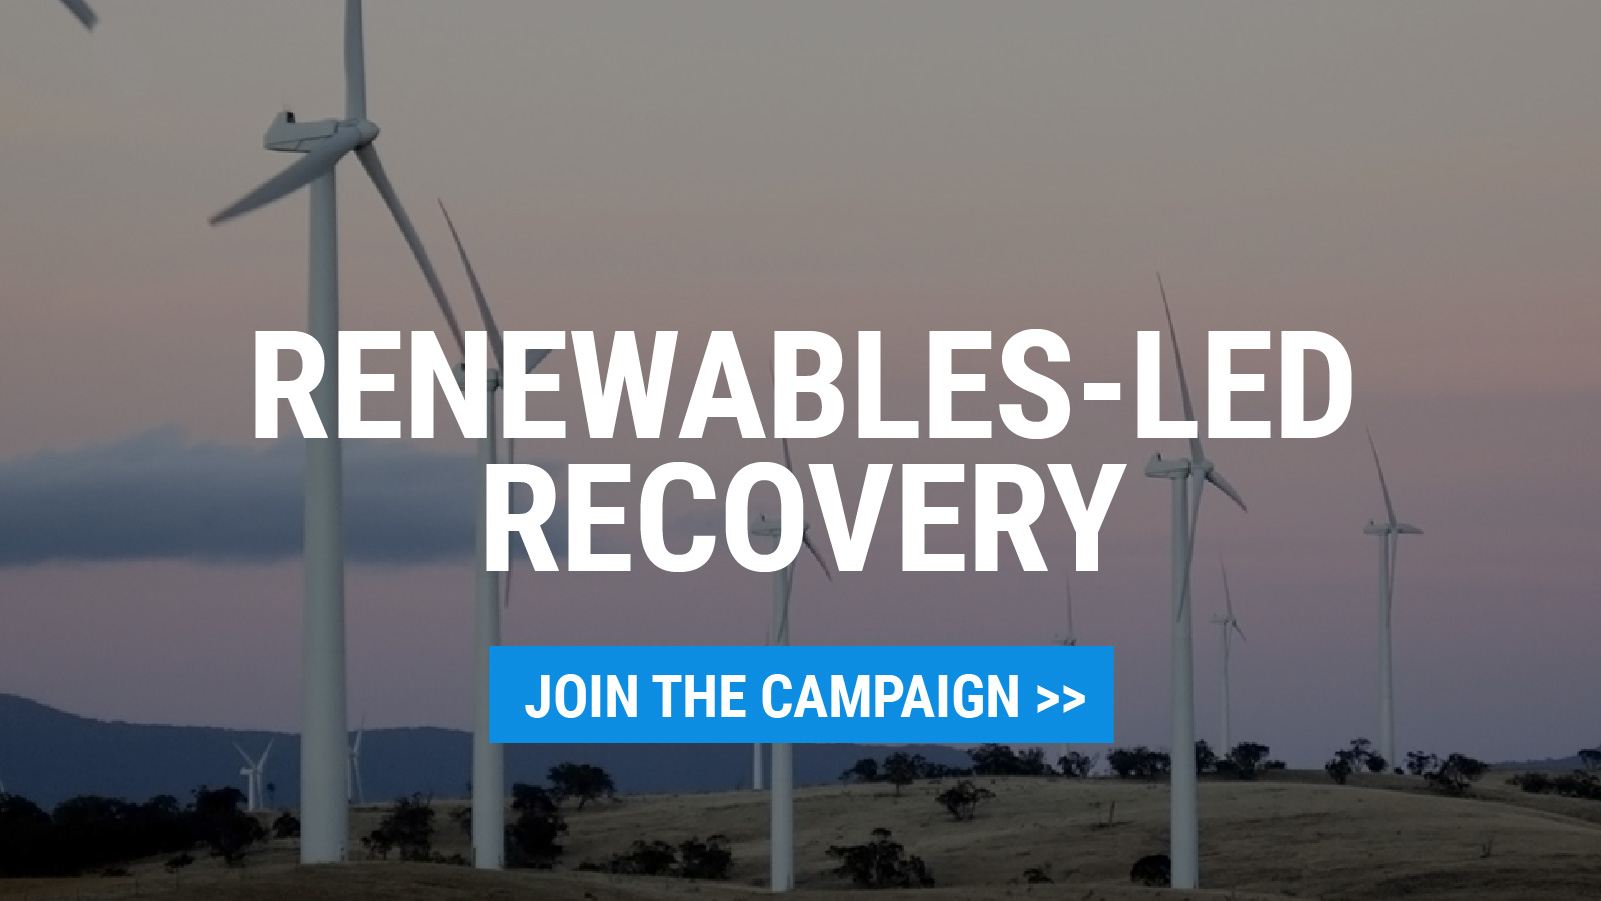 Renewables-led Recovery